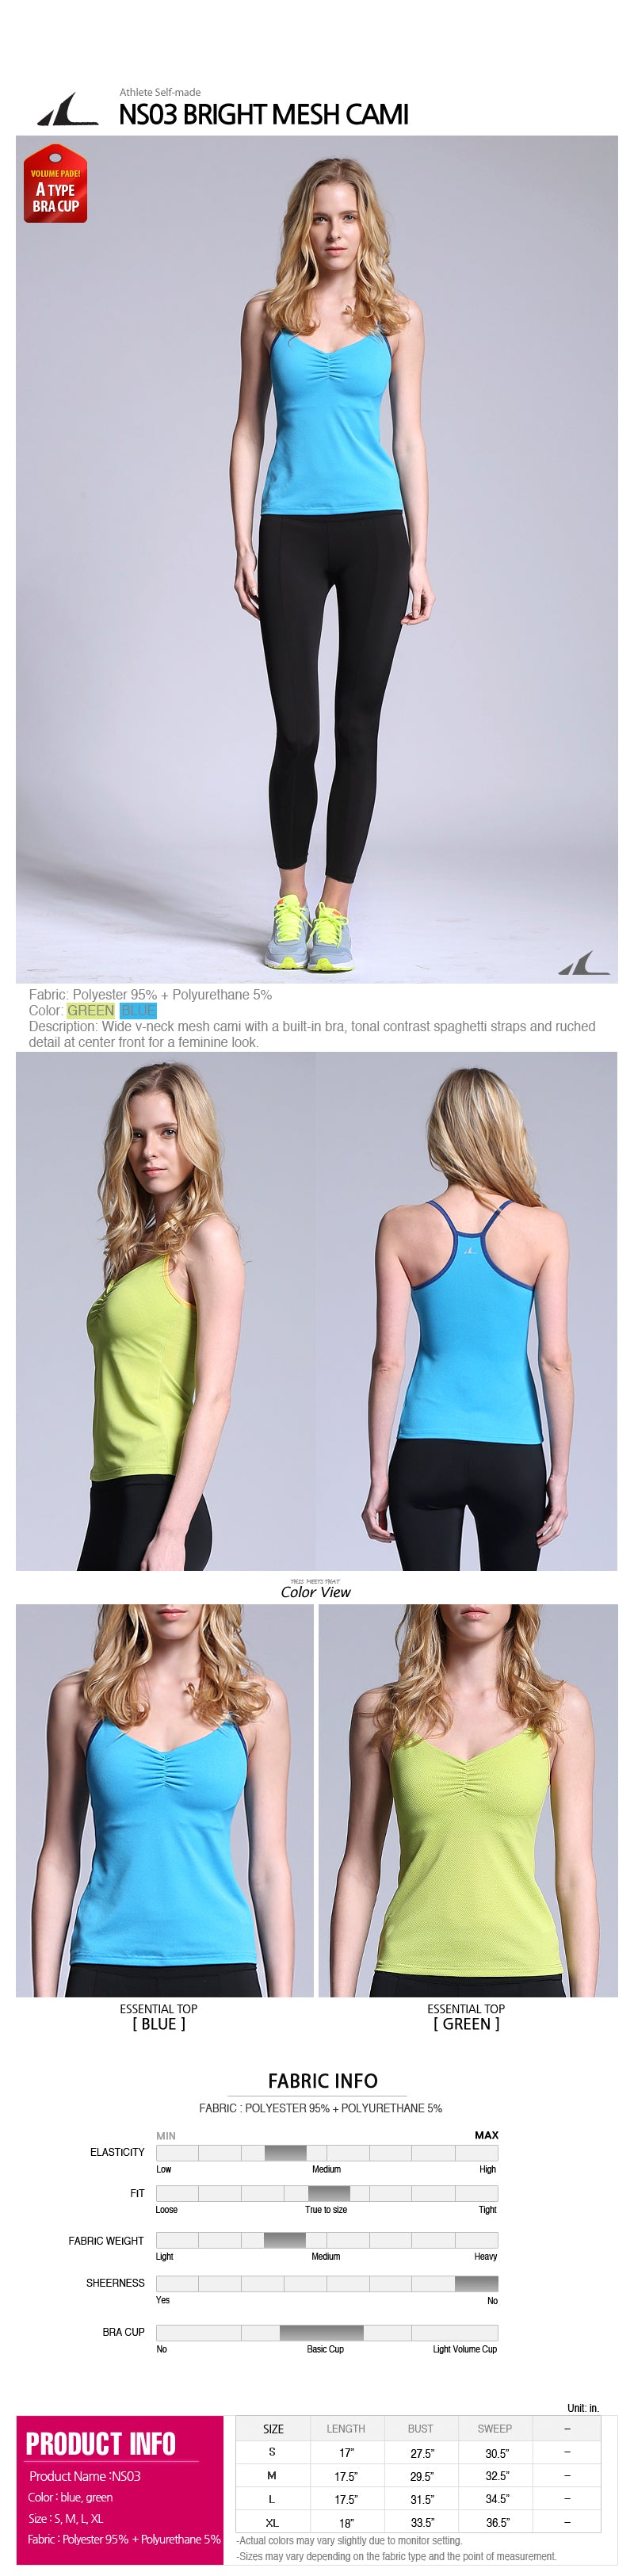 ATHLETE Women's Two-Tone Mesh Tank Top w/ removable pads, Style NS03